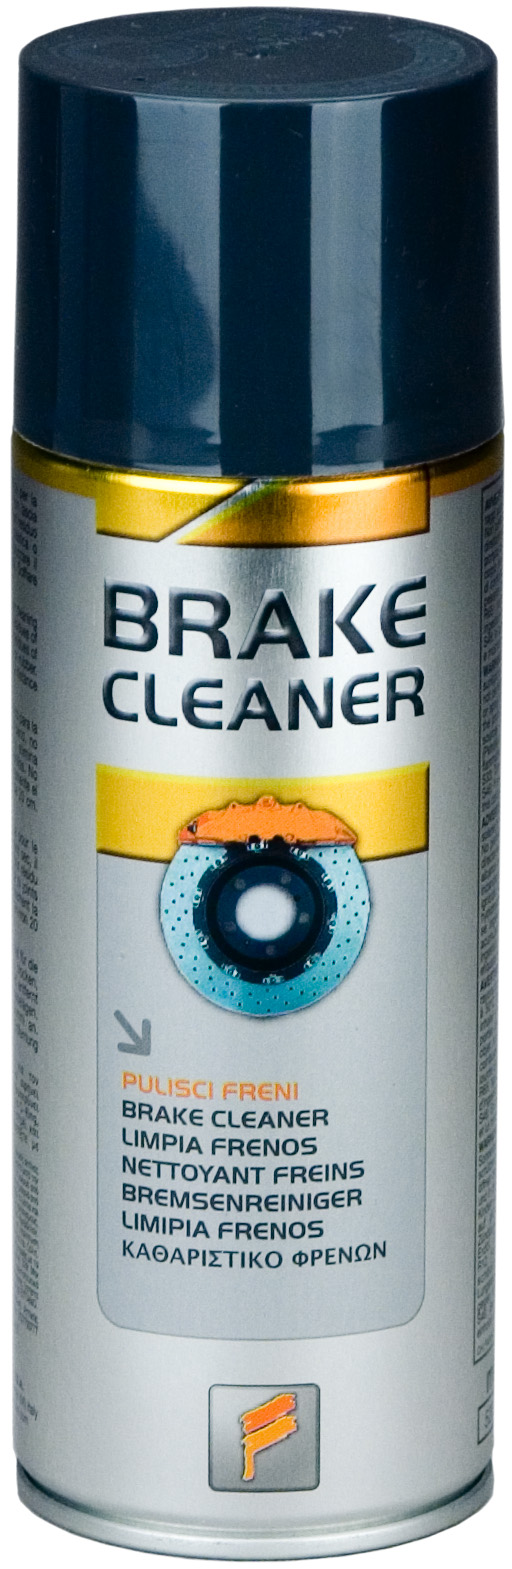 BRAKE CLEANER - 400 ml